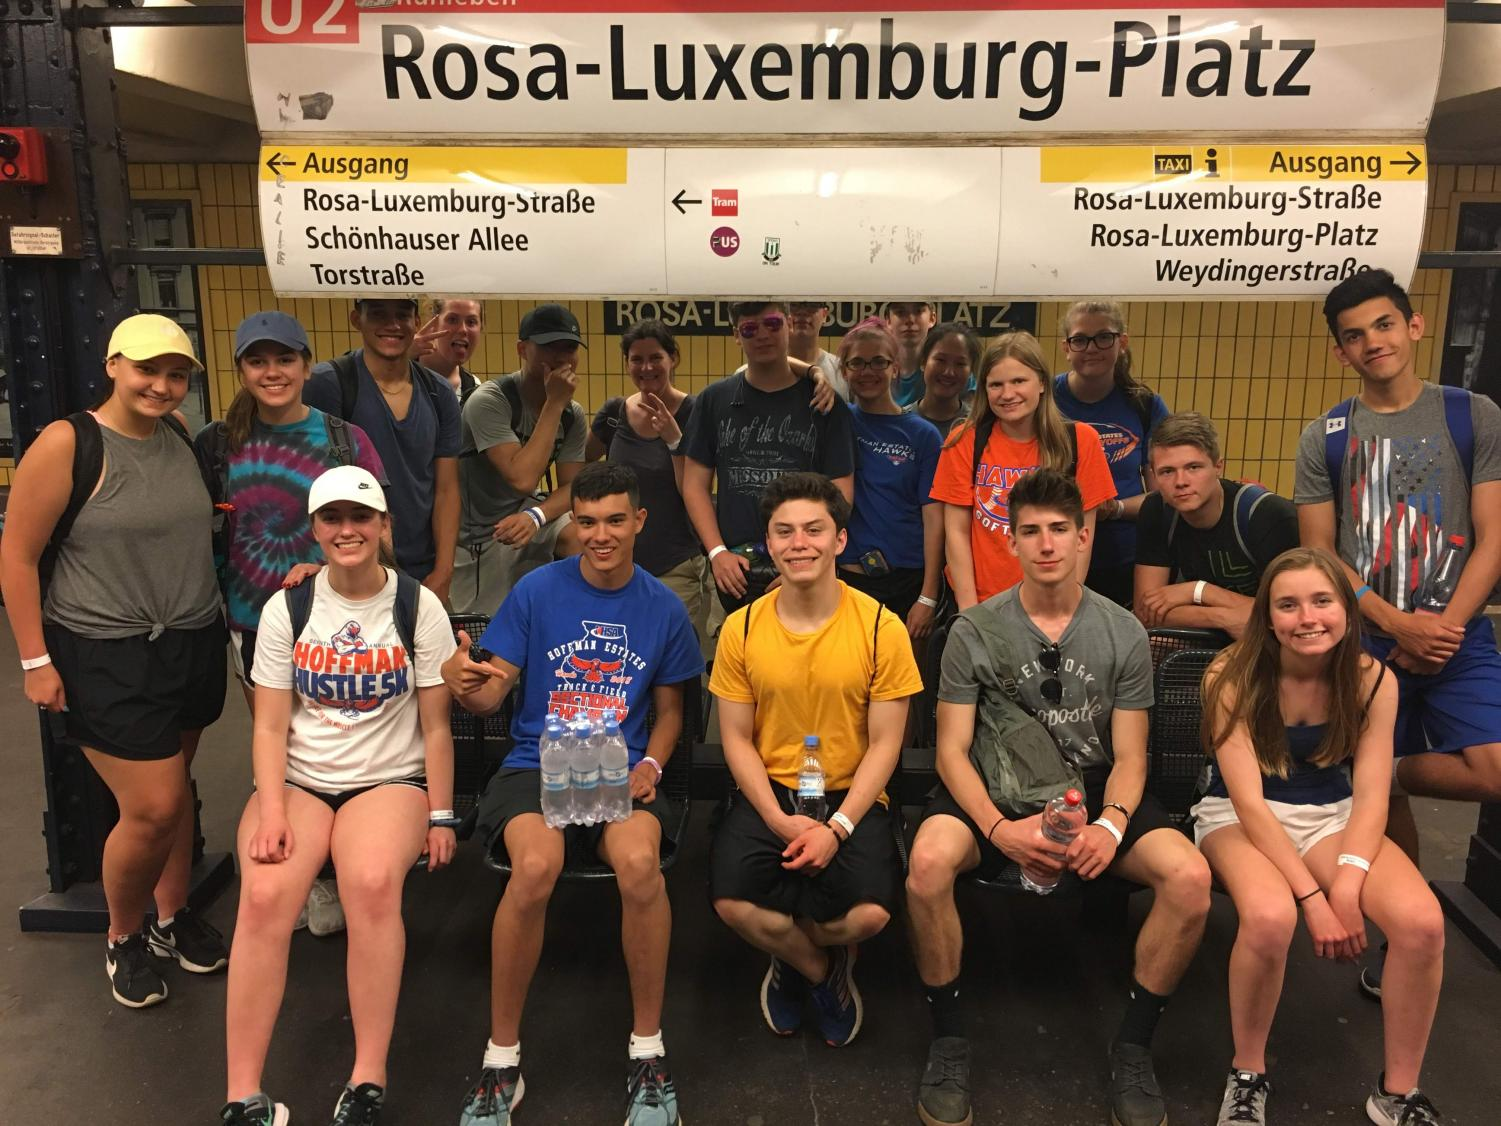 The group poses in a subway station in Berlin.